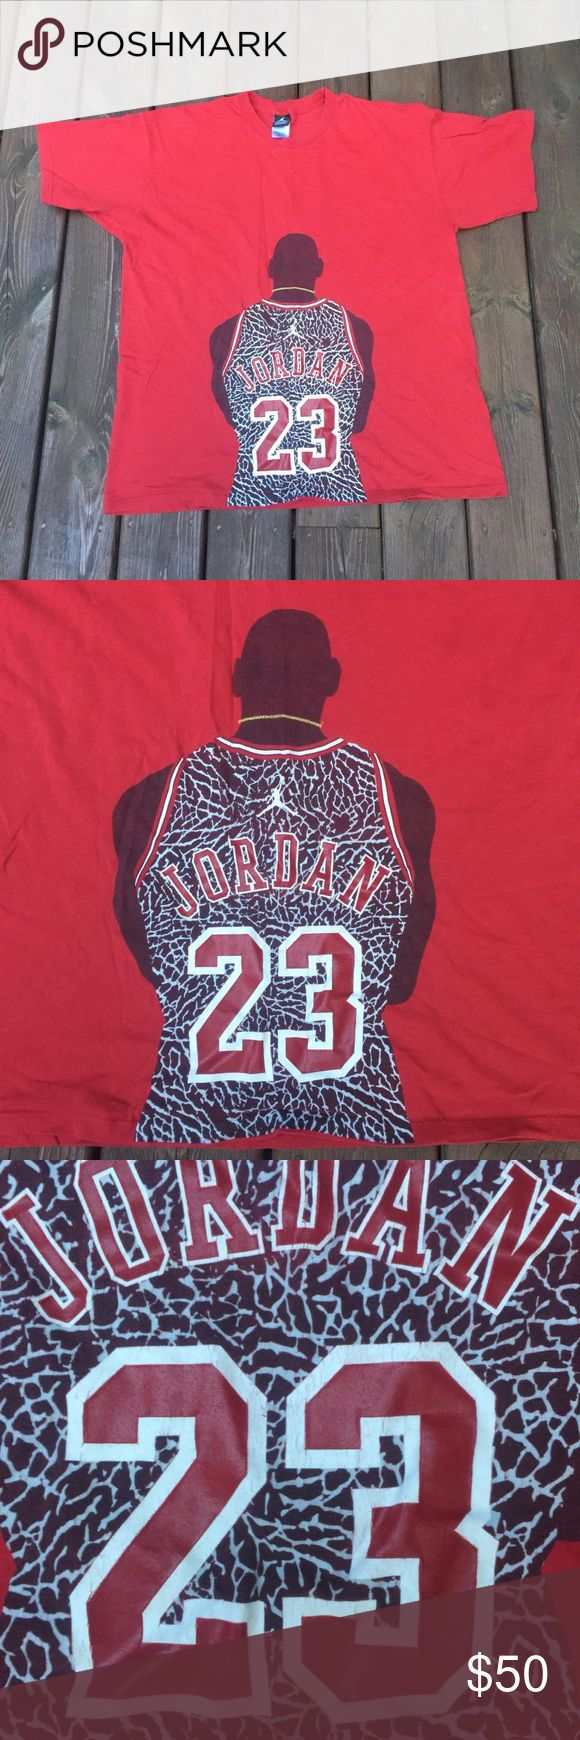 Vintage Air Jordan Michael Jordan T-Shirt Size XL Good condition. Paint is cracking and small hole in back (see pictures). Please ask any questions, thanks! Nike Shirts Tees - Short Sleeve